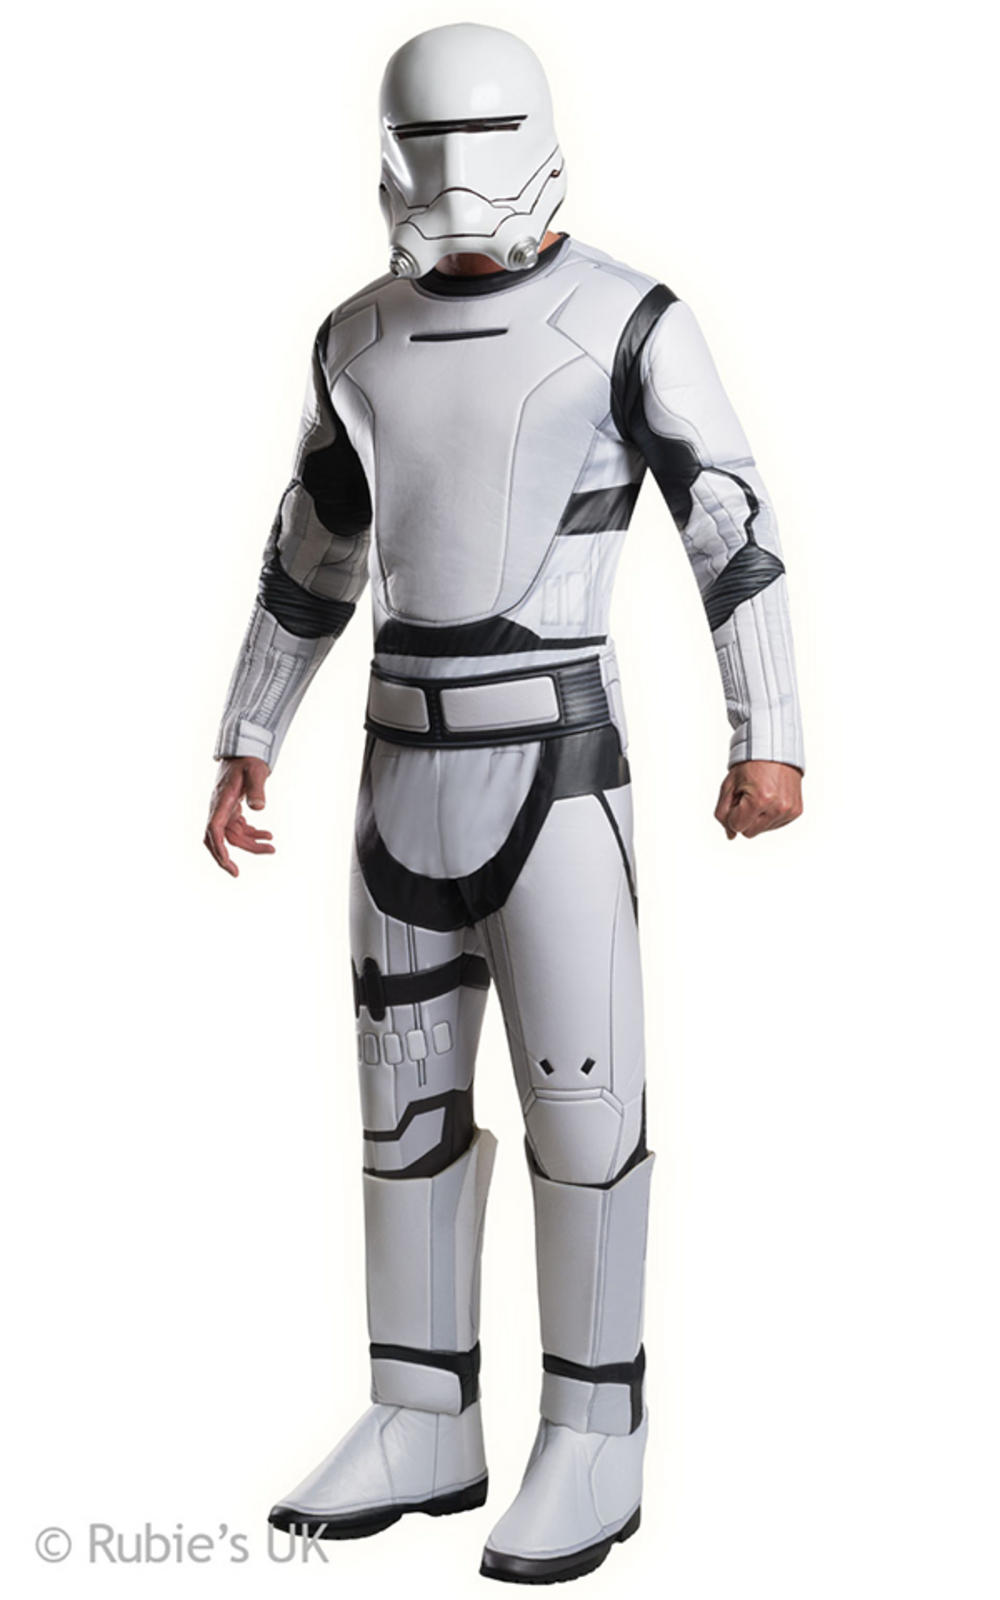 Deluxe Flametrooper Mens The Force Awakens Star Wars Costume